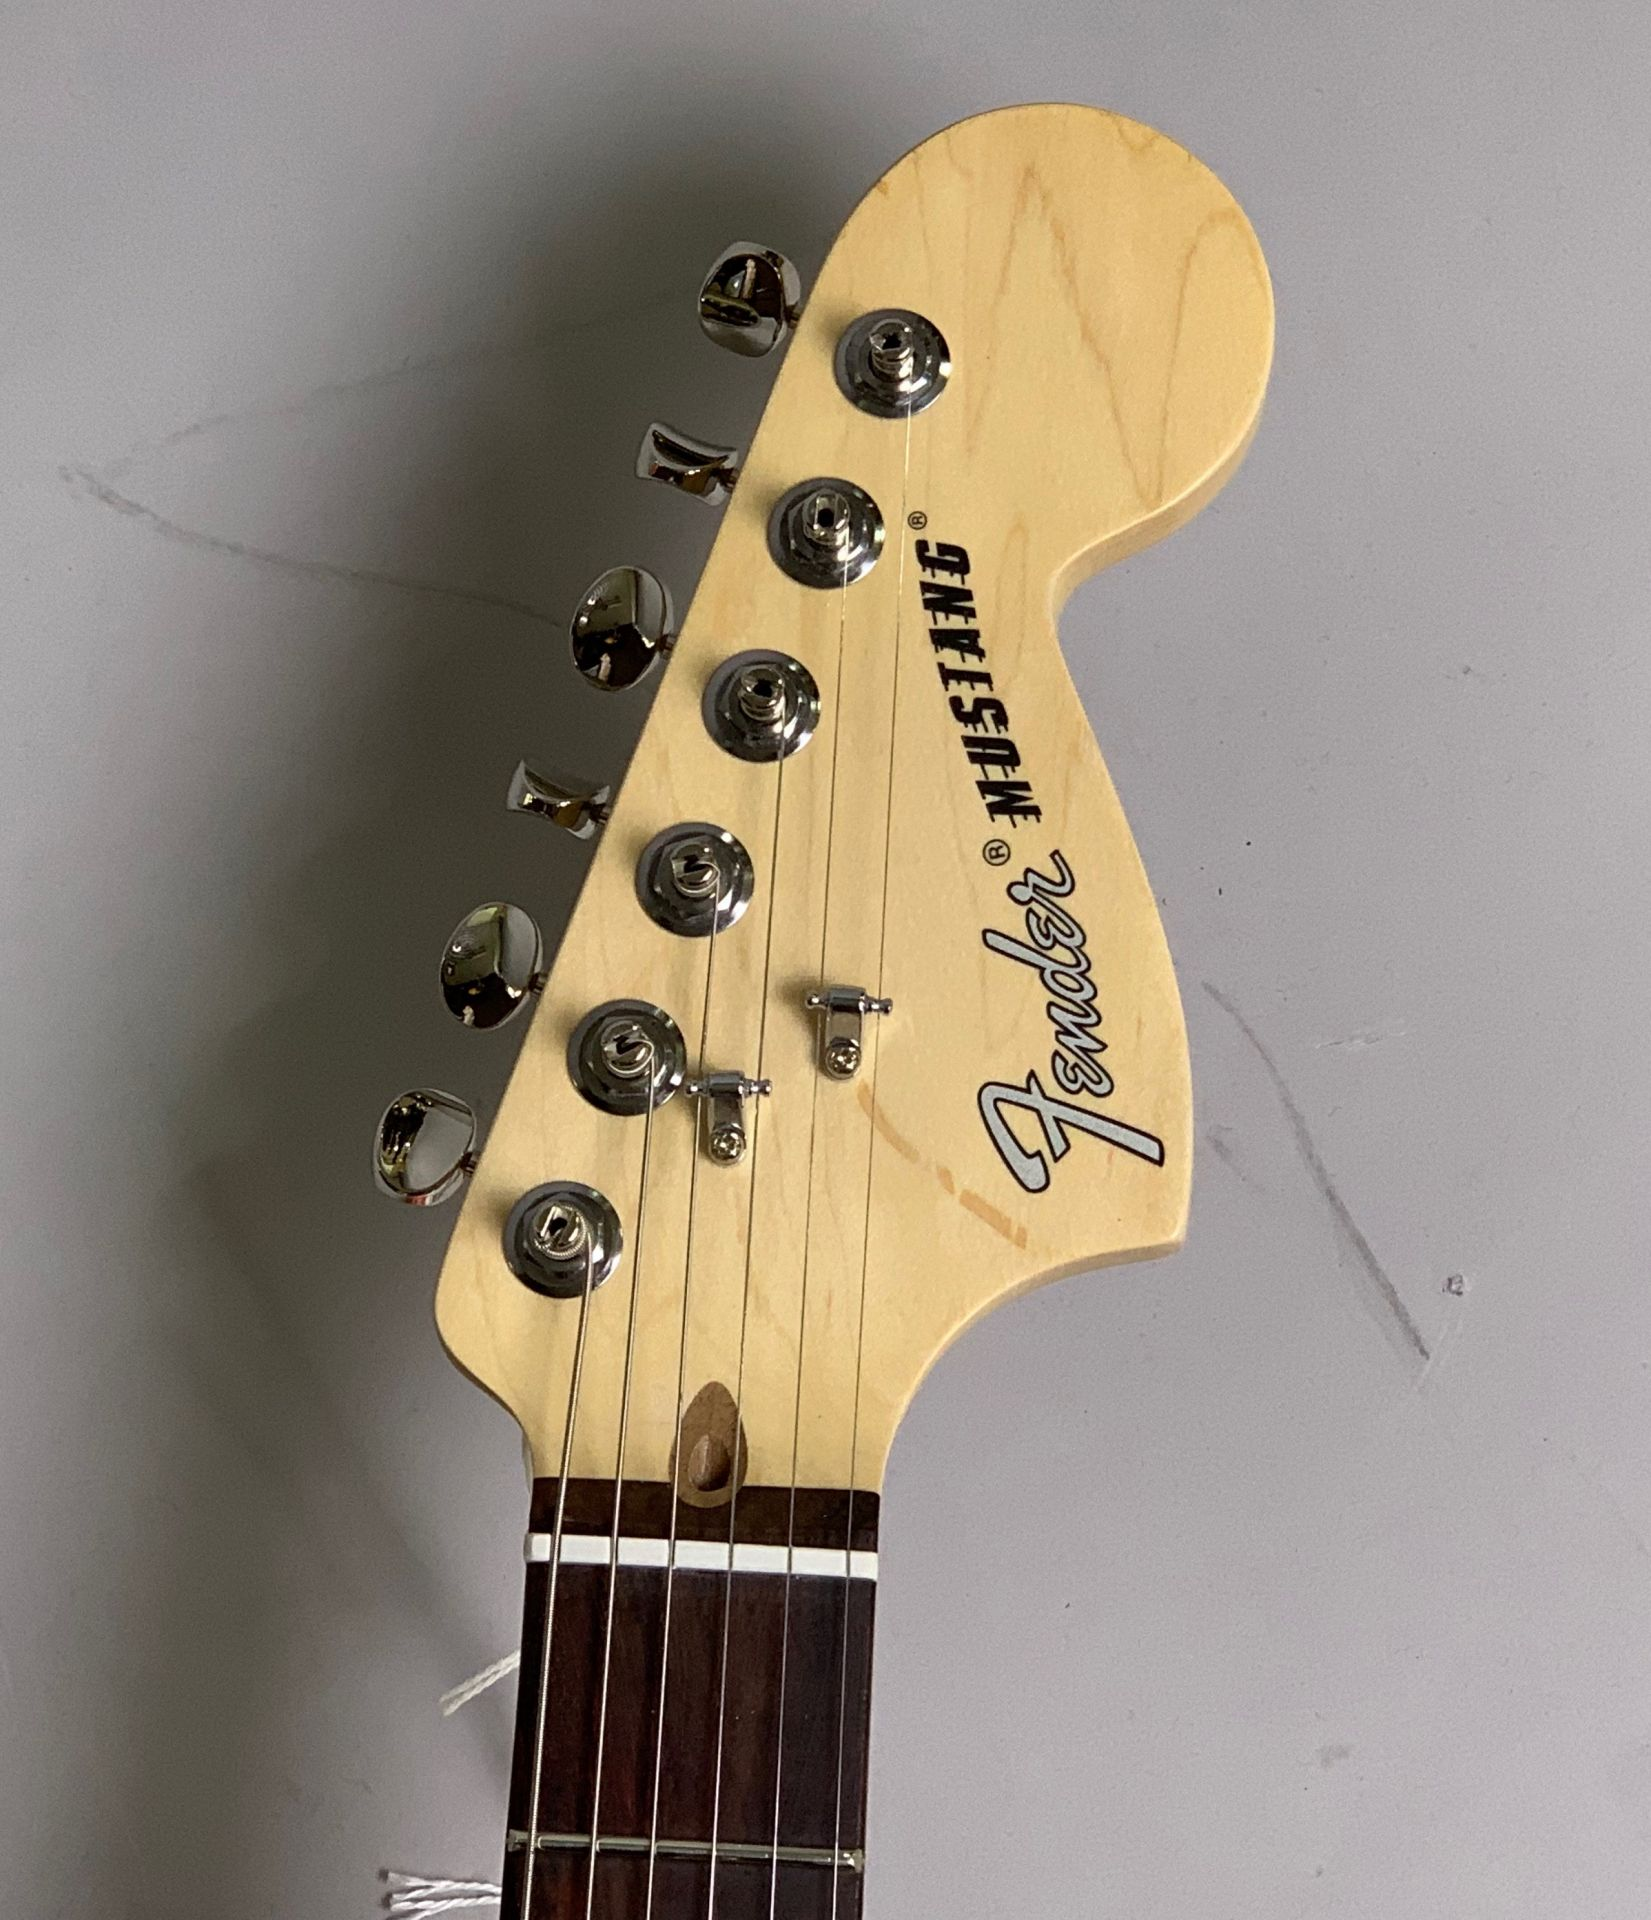 American Performer Mustang Rosewood Fingerboard Pennyのヘッド画像